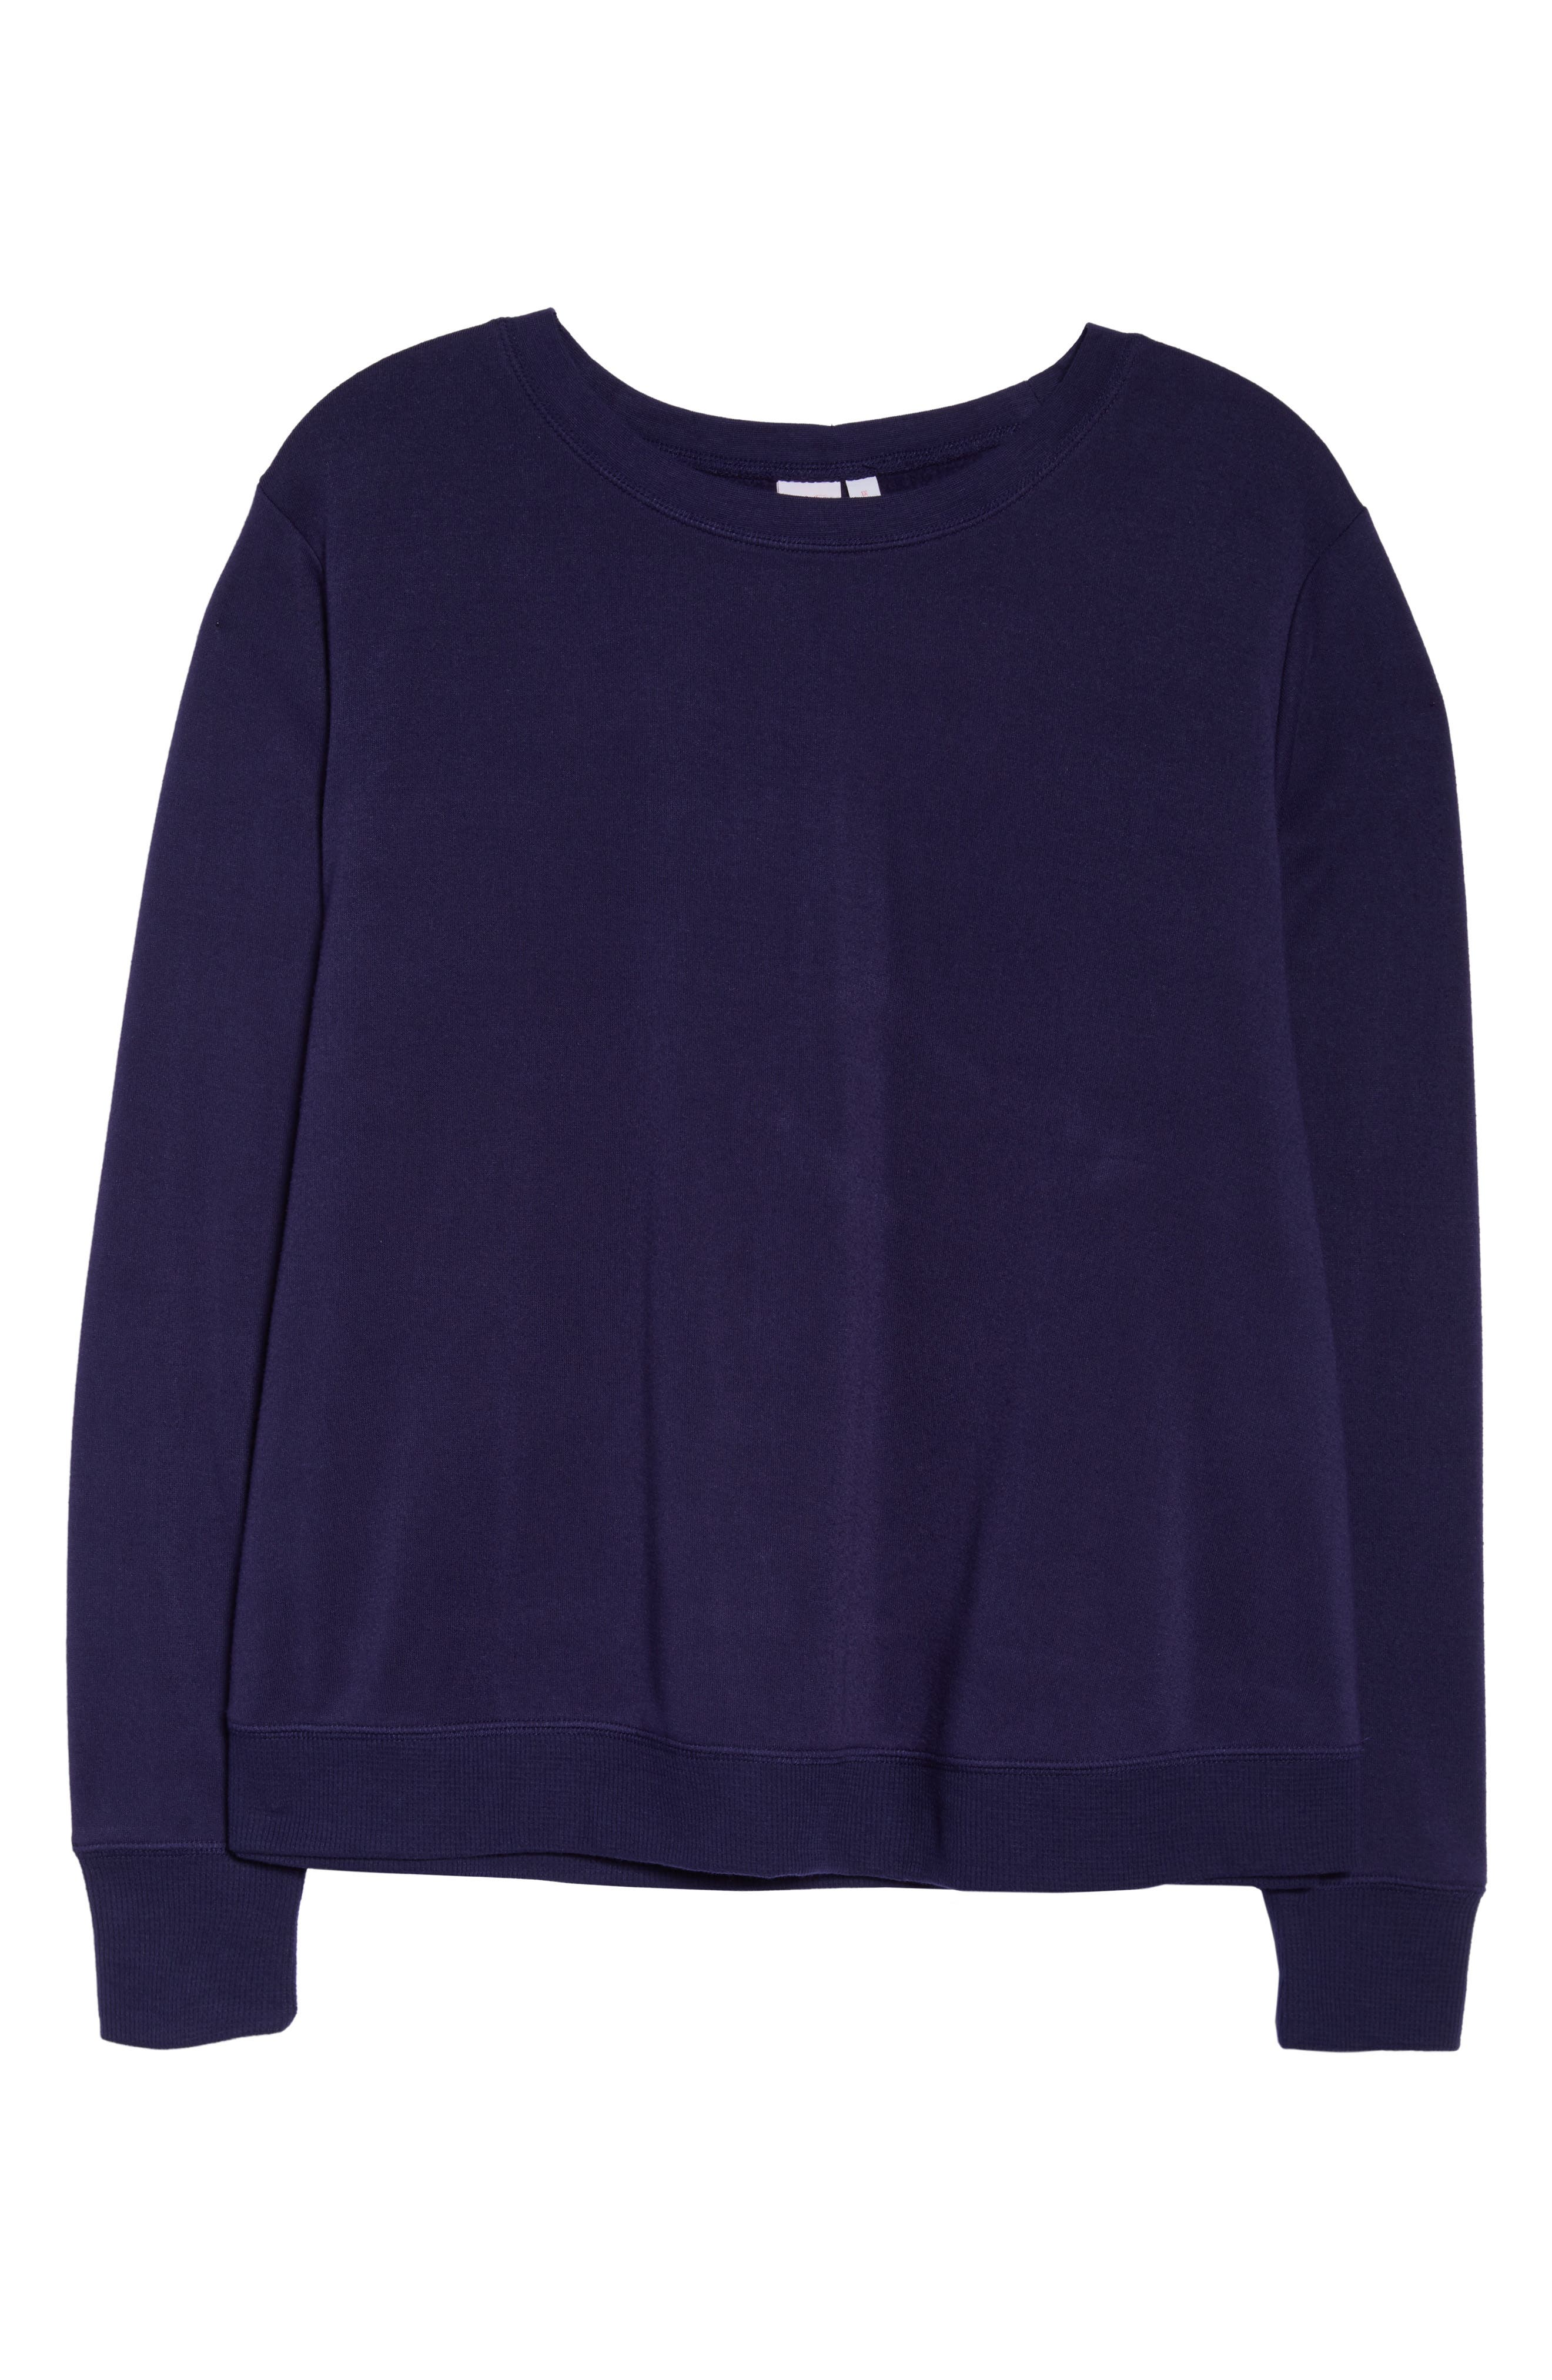 This Is It Sweatshirt,                             Alternate thumbnail 6, color,                             NAVY DUSK